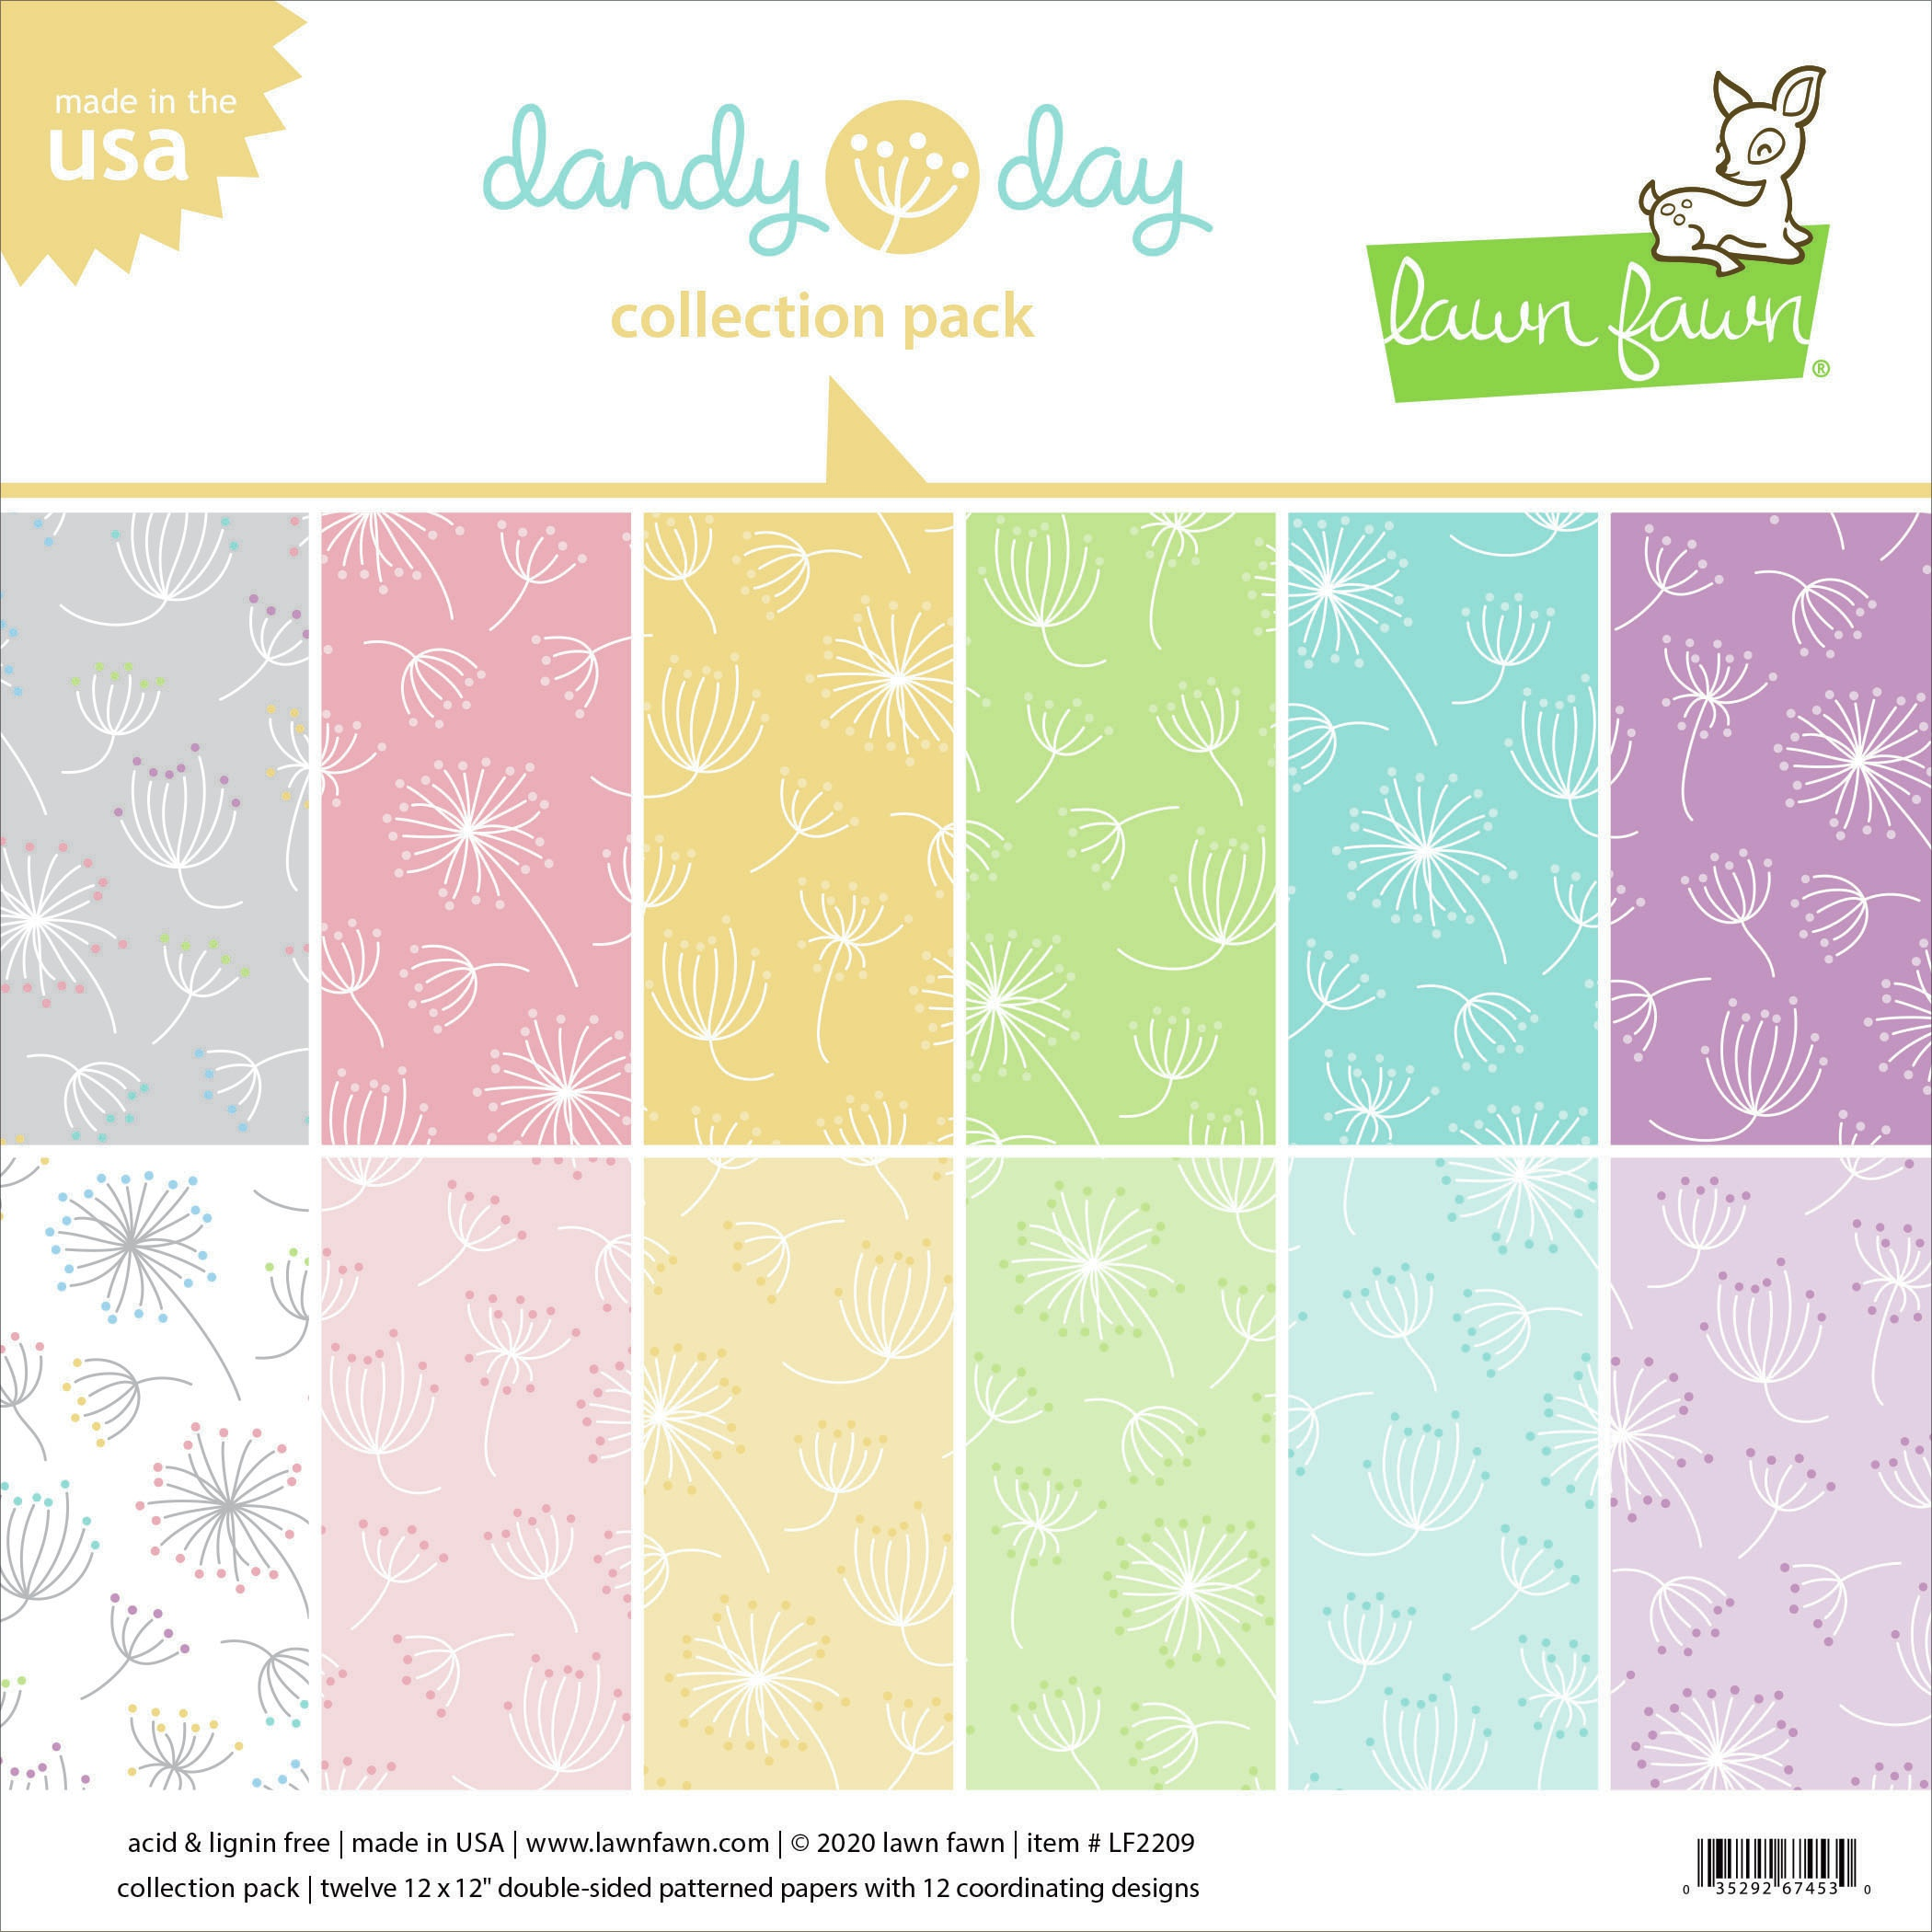 Lawn Fawn Double-Sided Collection Pack 12X12 12/Pkg-Dandy Day 6 Designs/2 Each